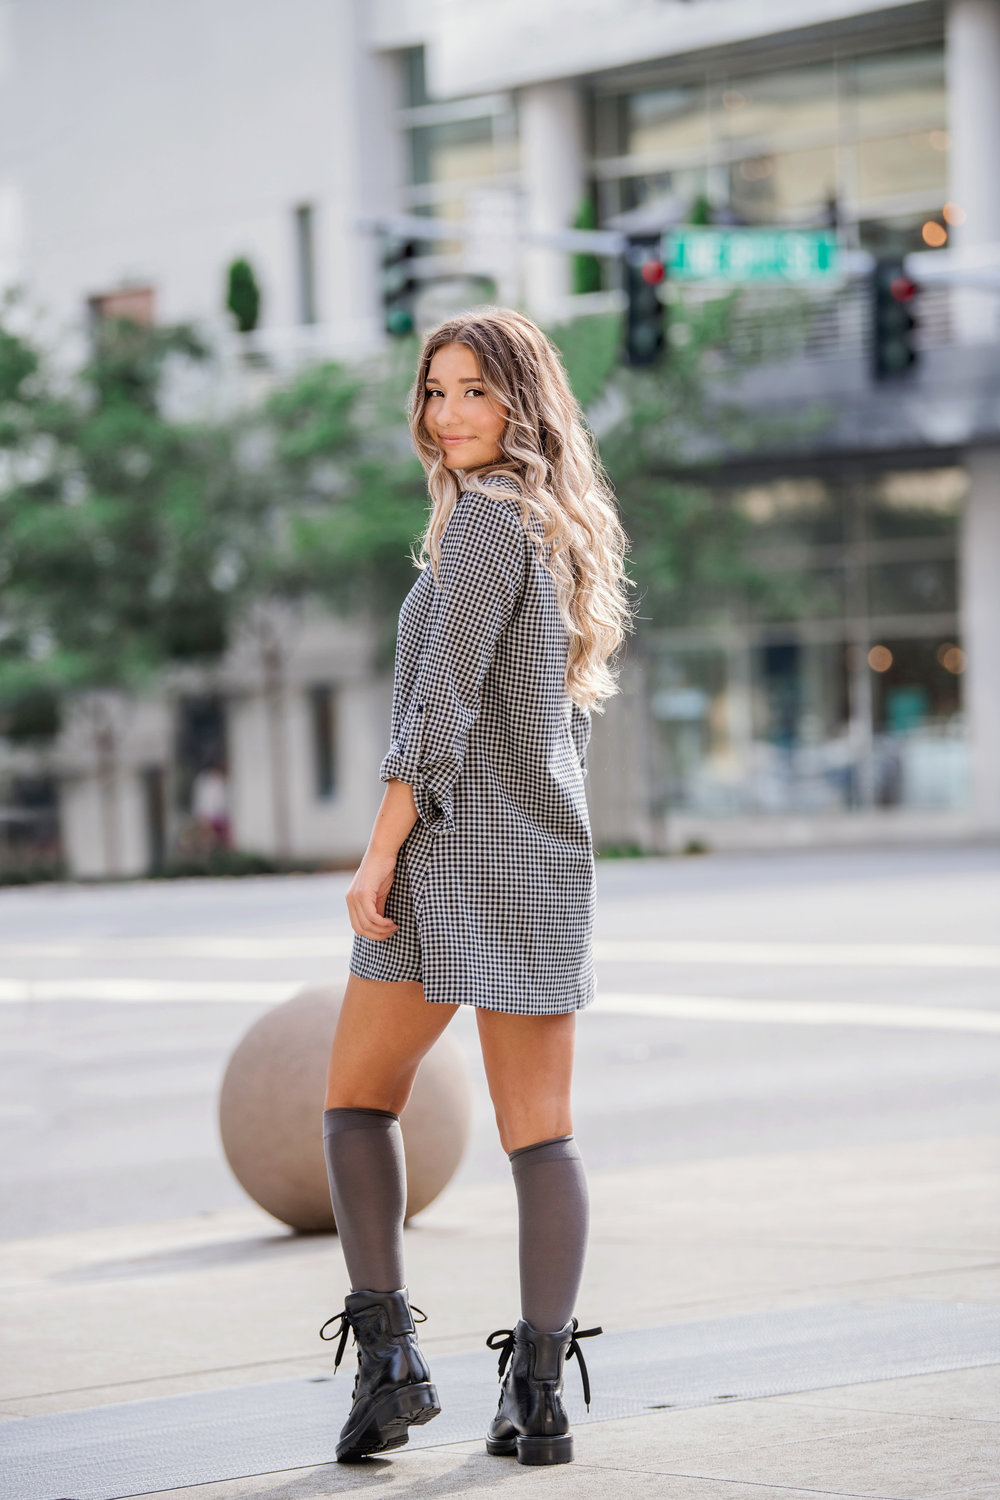 Spotted: senior stunner Sophia. - What is this beauty doing strolling the streets of Downtown Bellevue?